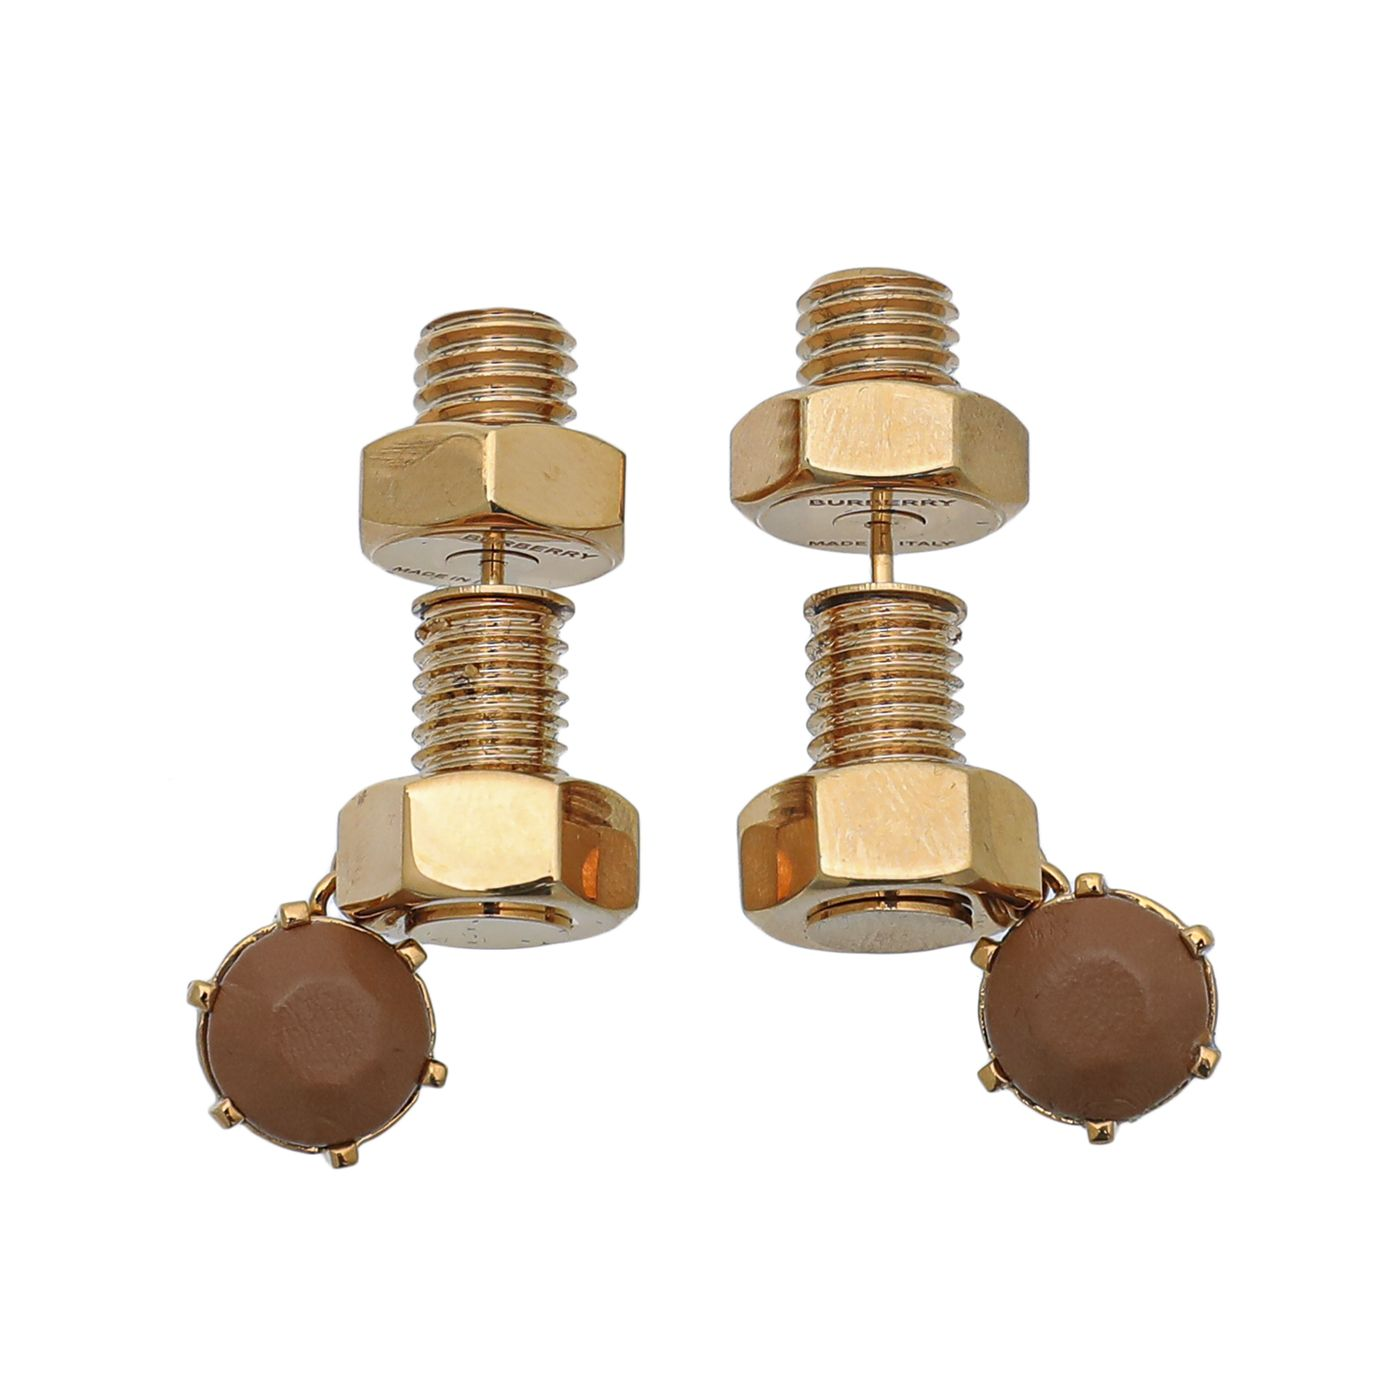 Burberry Nut and Bolt Charm Earrings W/ Brown Crystal